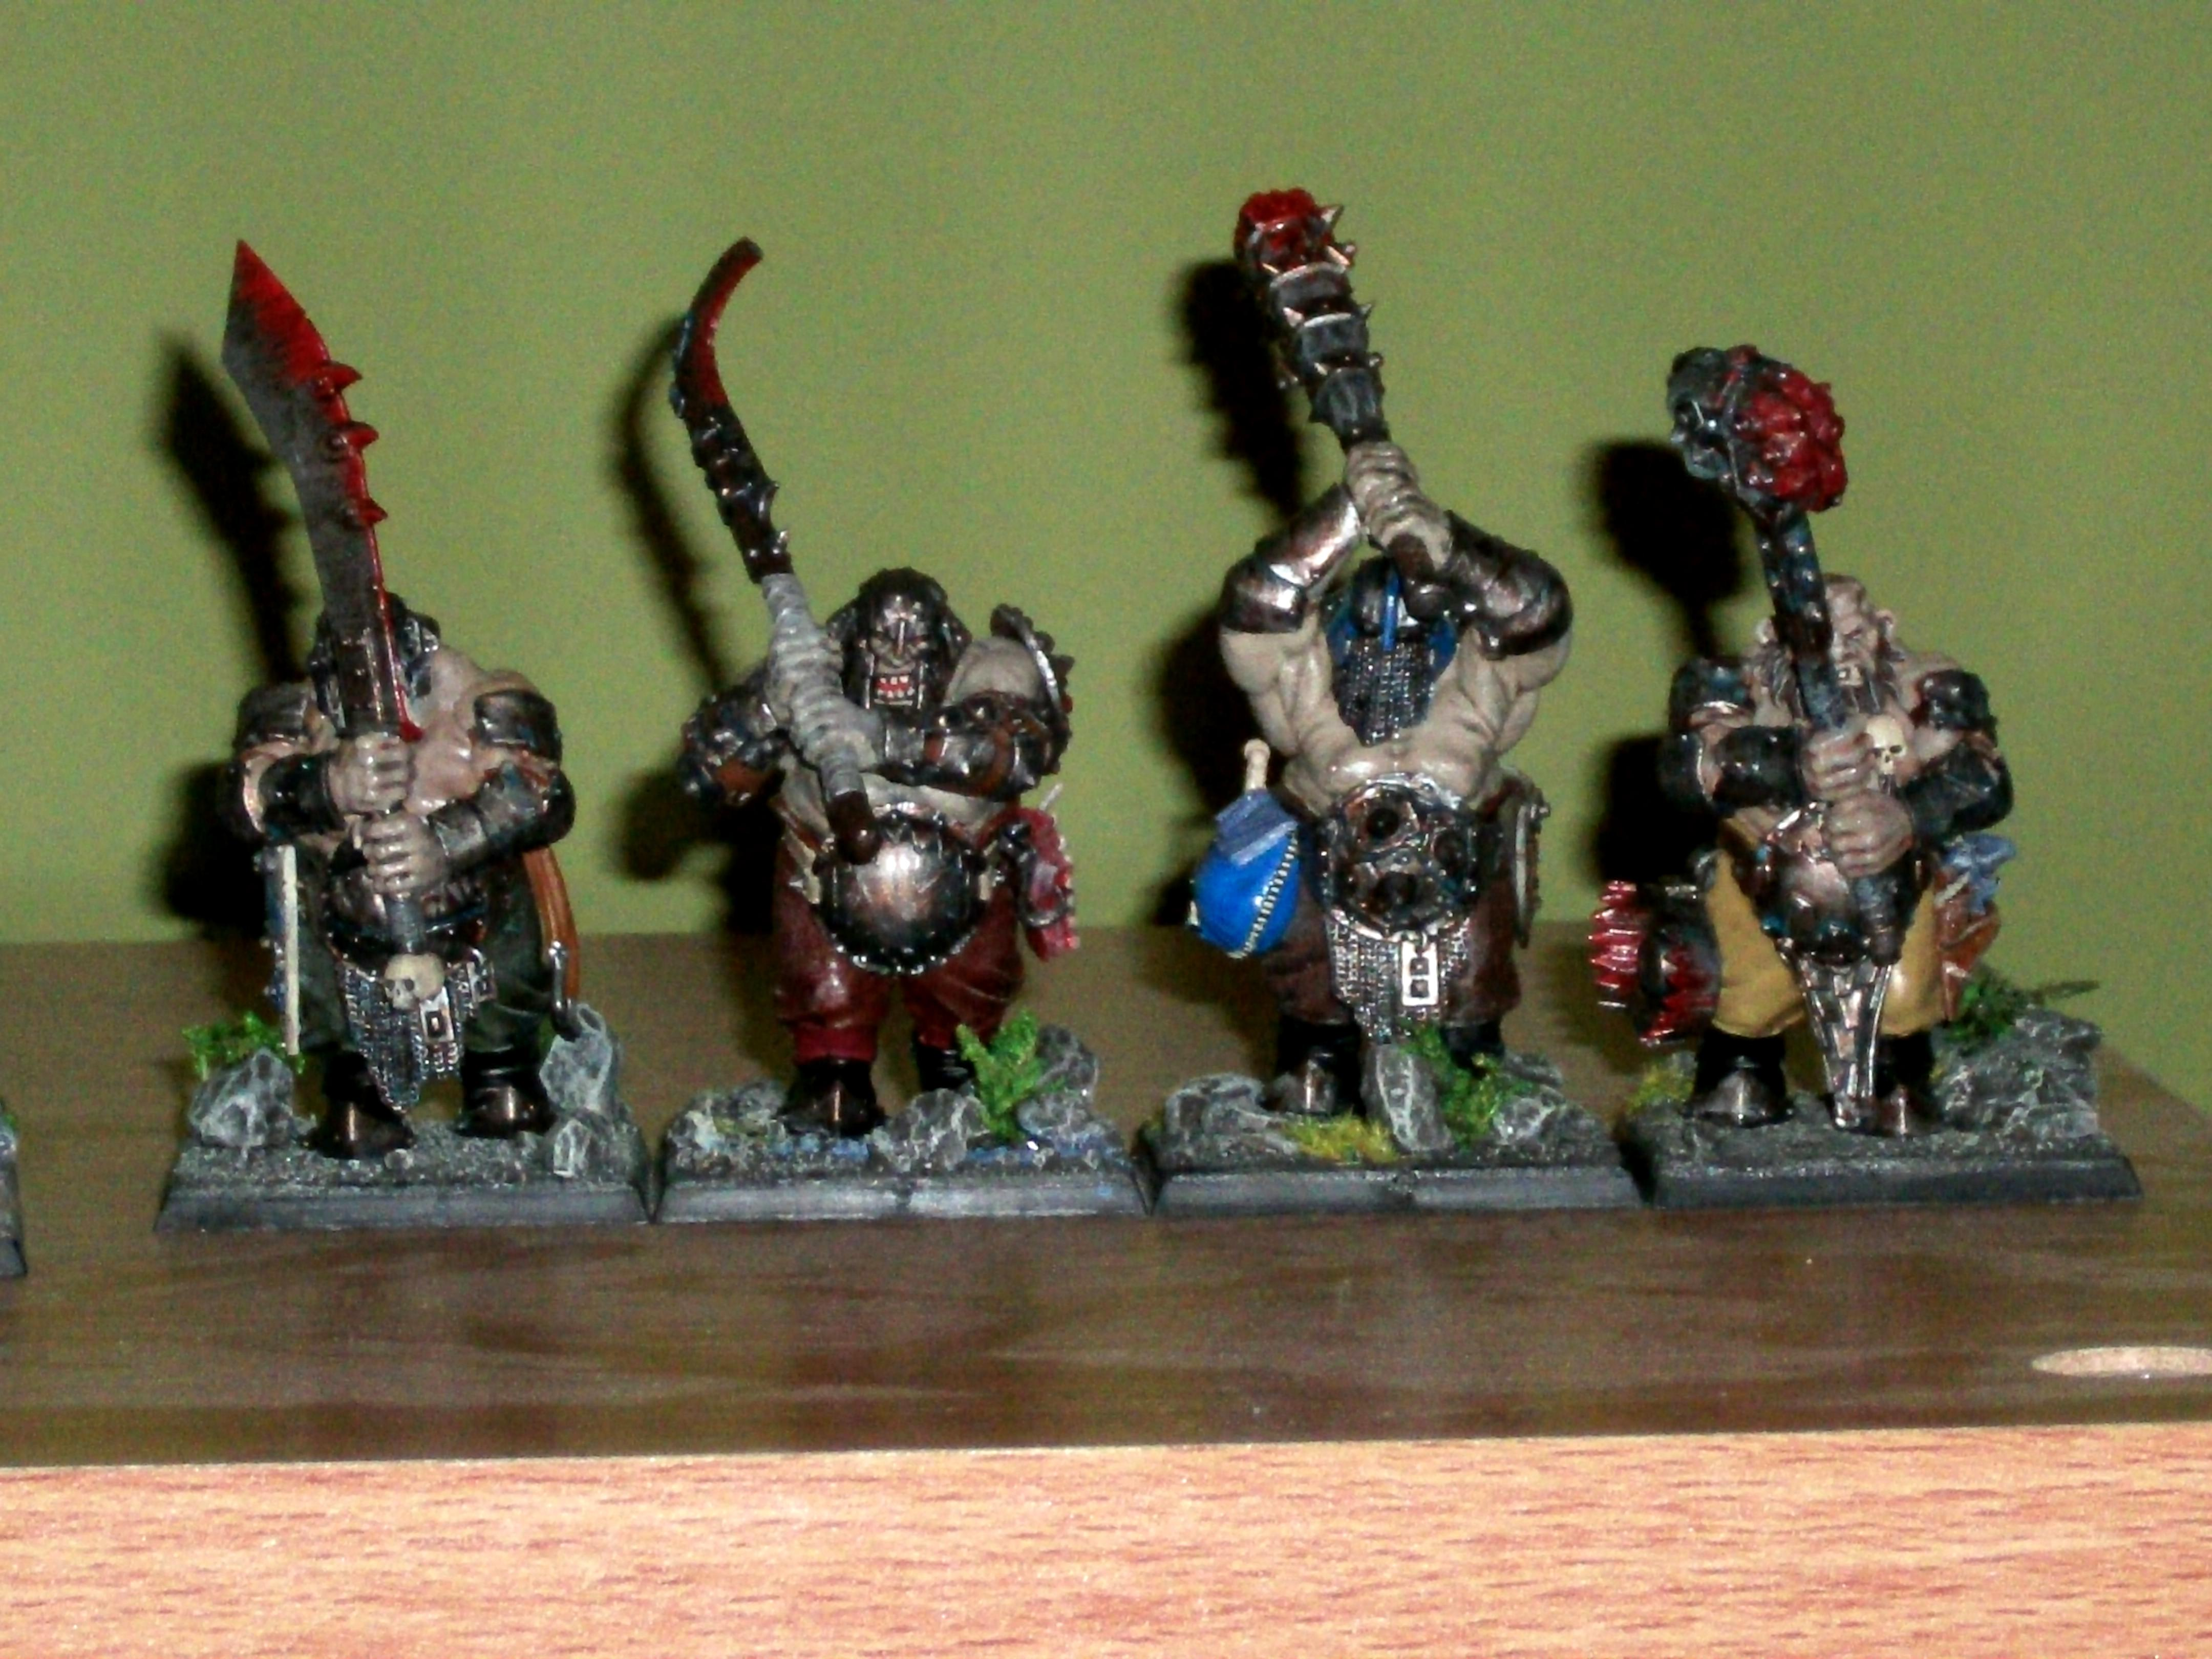 Cavalry, Curs'd Ettin, Giant, Mournfang, Mournfangs, Ogre Kingdoms, Ogres, Slave Giant